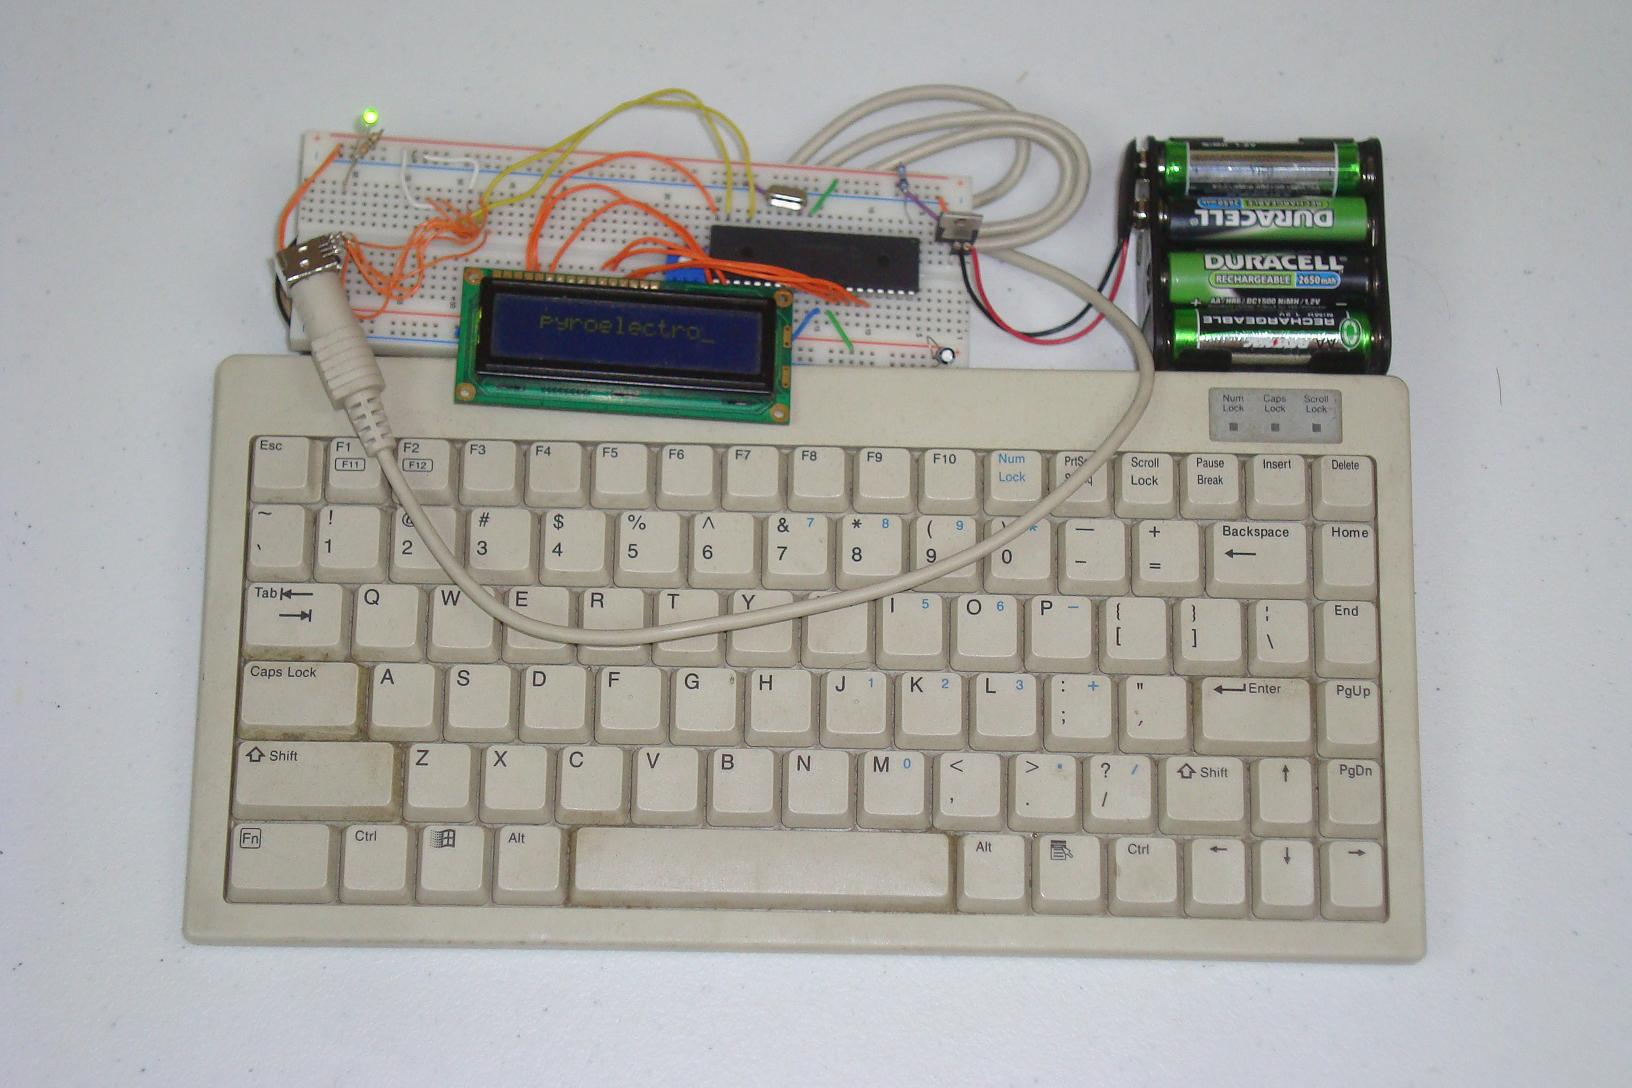 Ps 2 Keyboard To 16x2 Lcd Conclusion Pyroelectro News Simple Pic Usb Interface Schematic Projects Tutorials